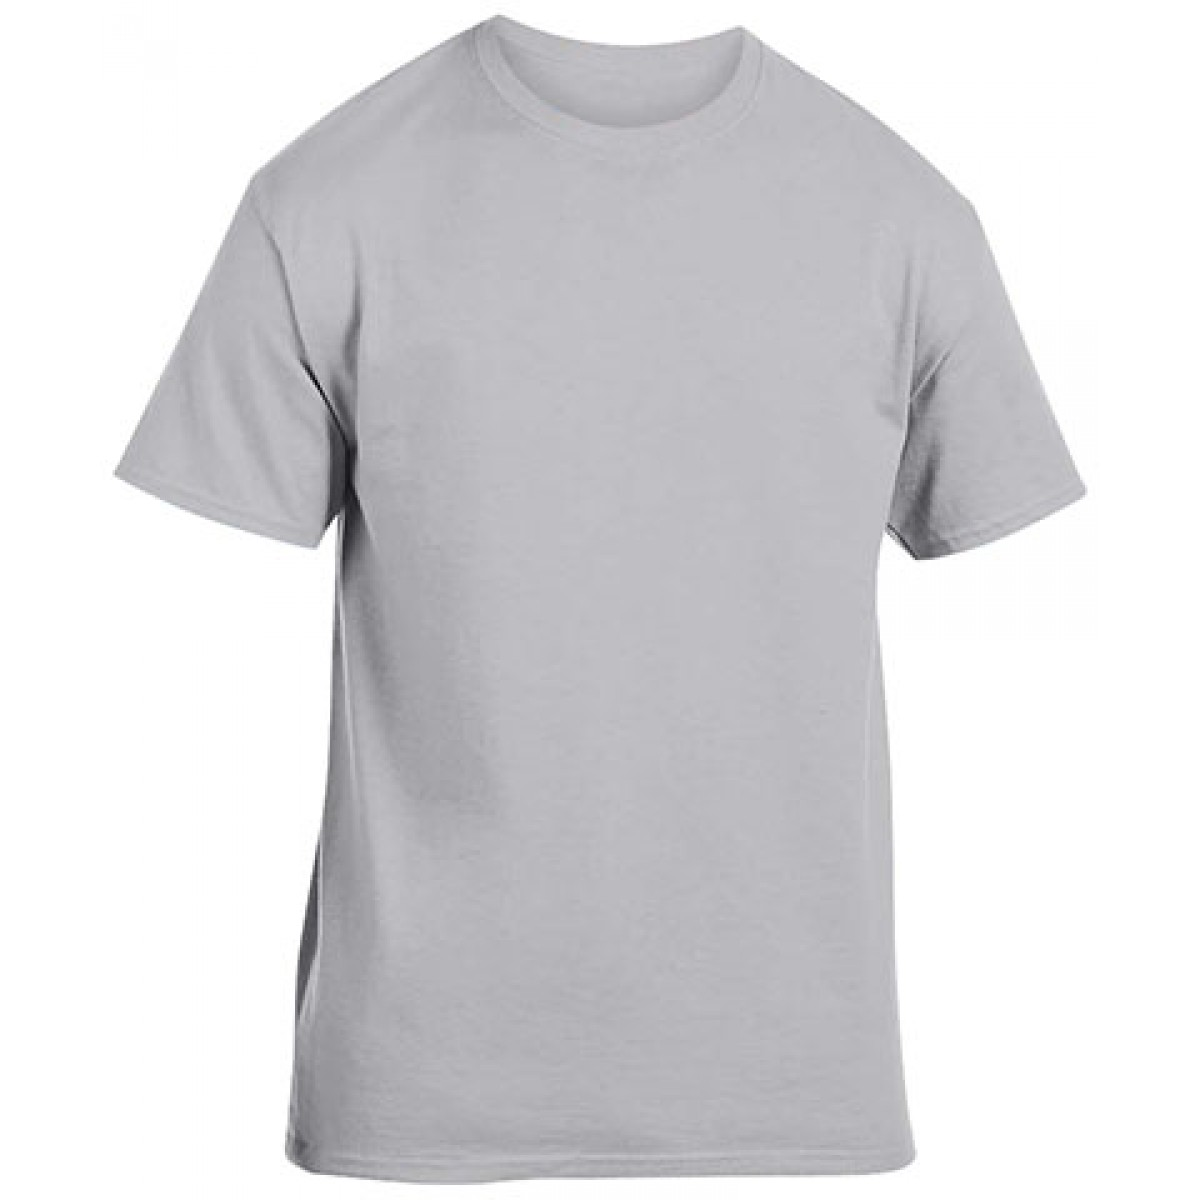 Cotton Short Sleeve T-Shirt-Gray-S